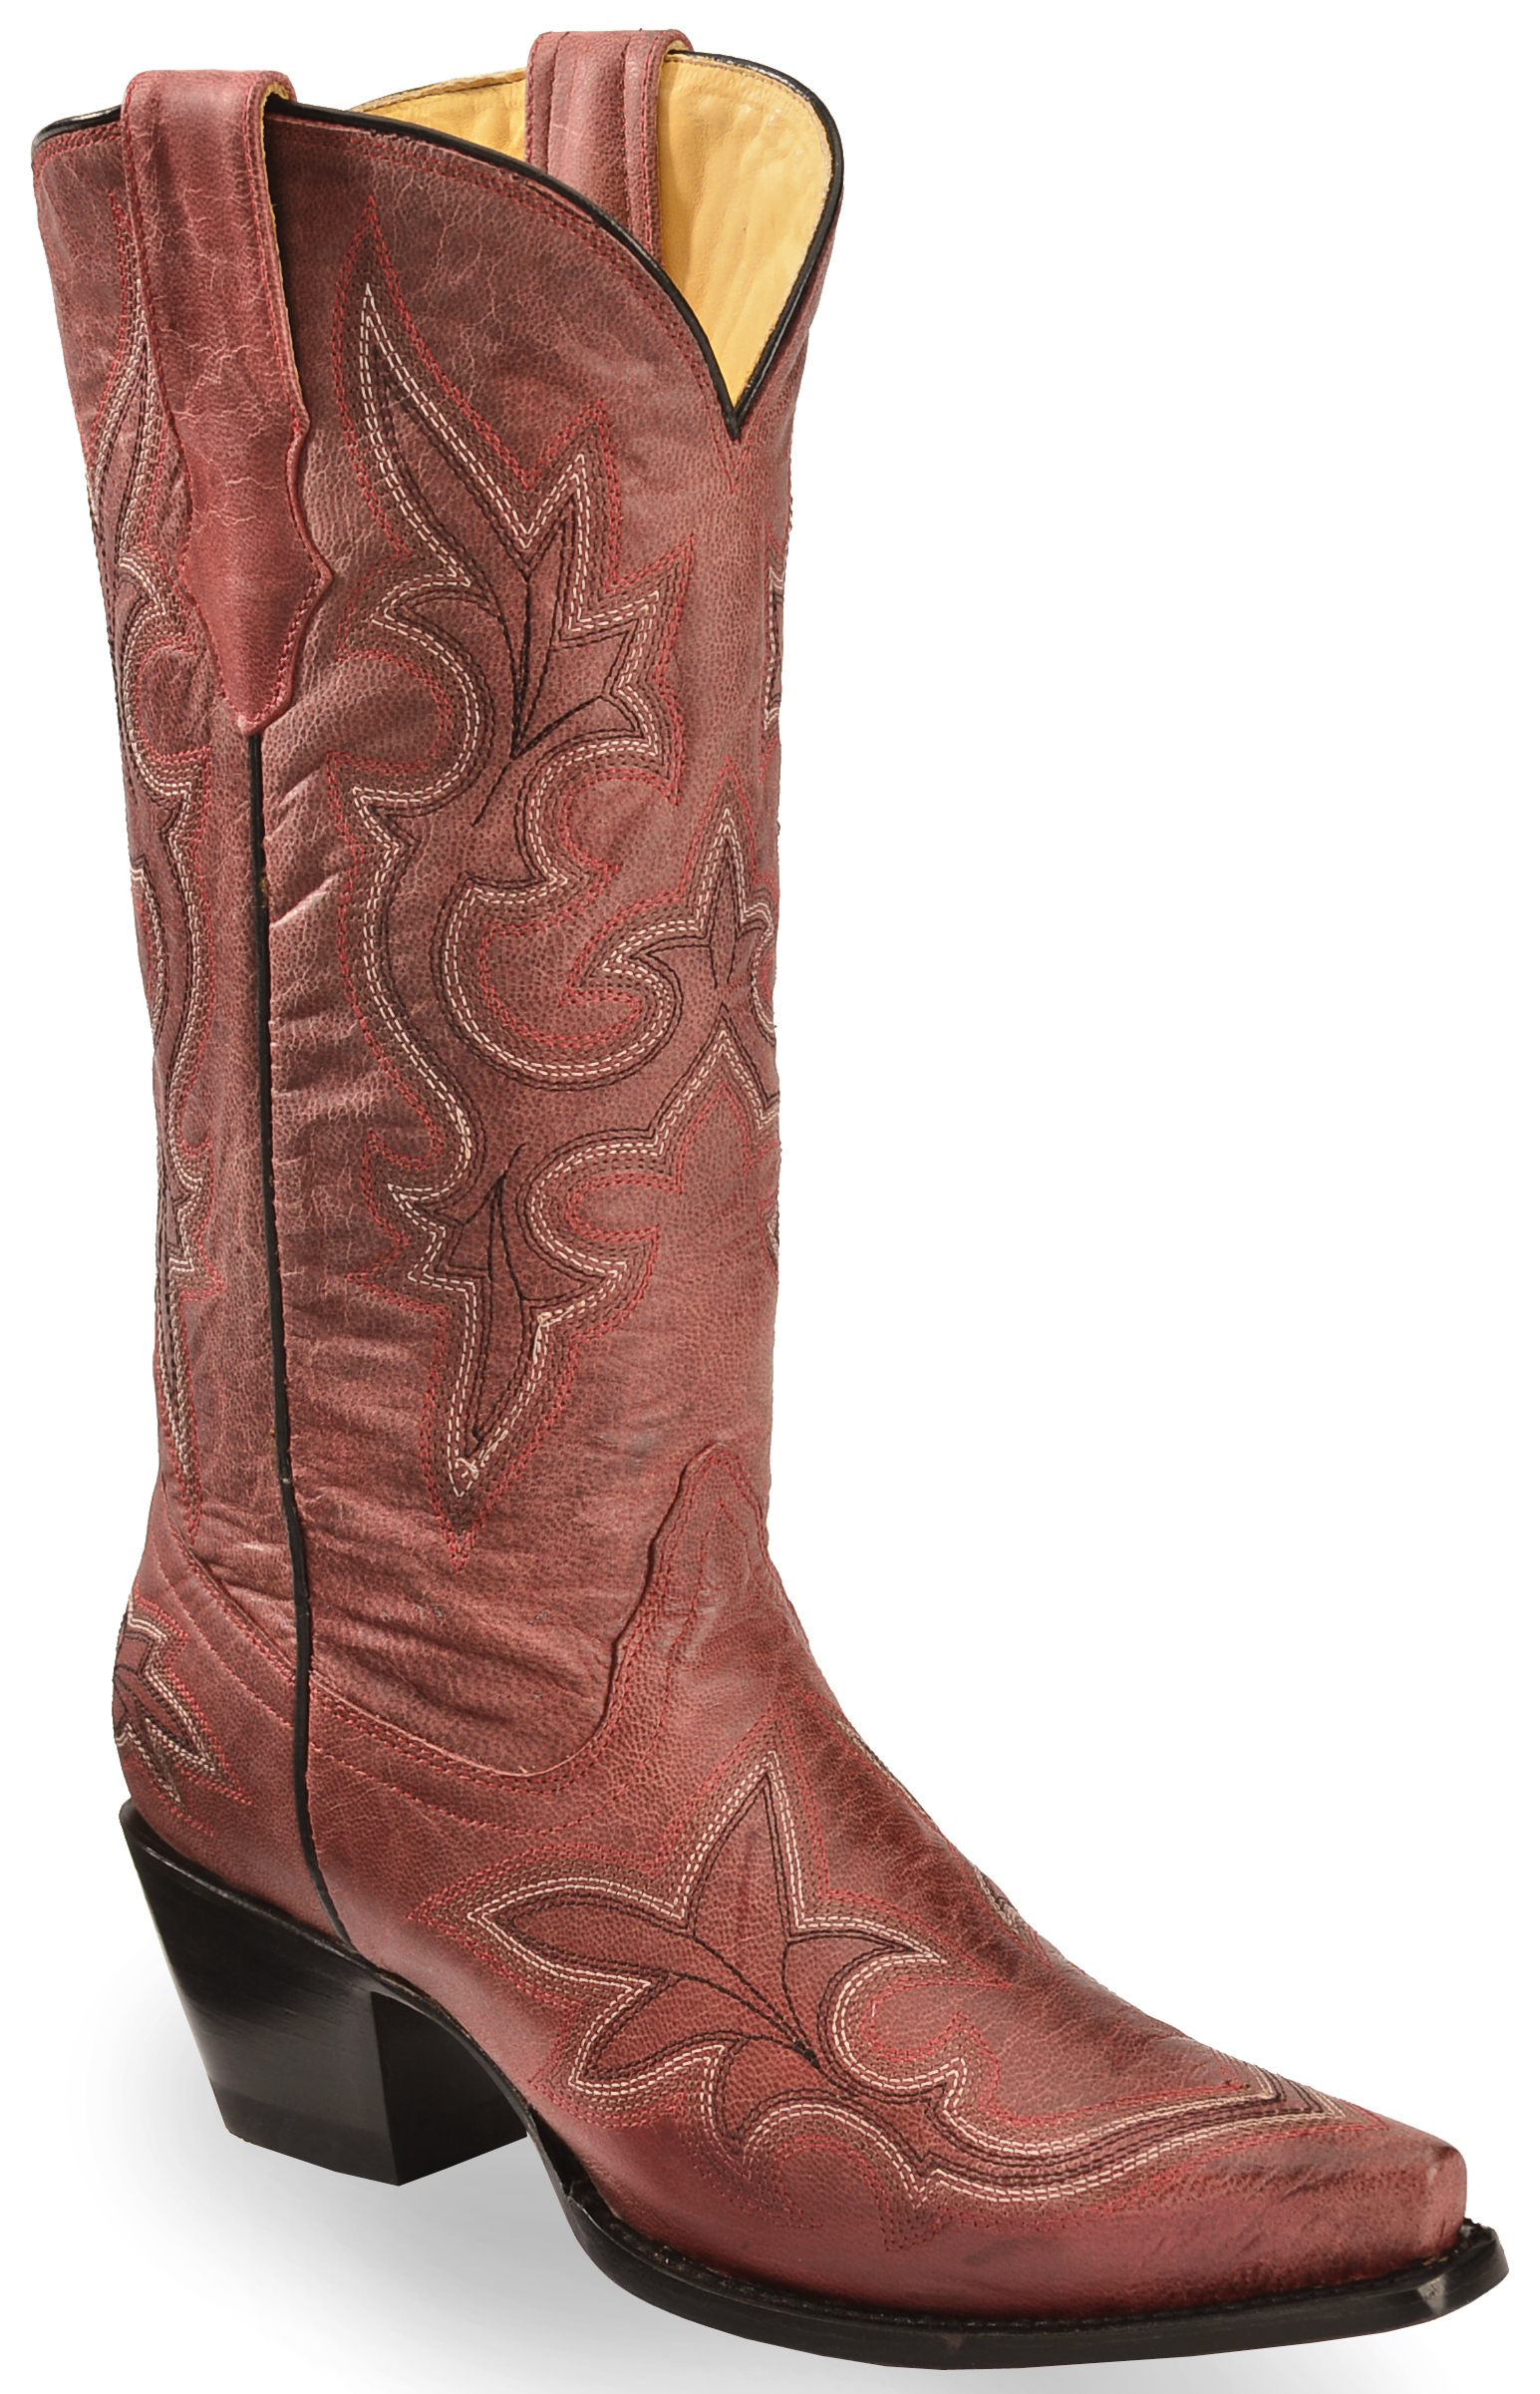 Corral Women's Vintage Leather Western Boots - Snip Toe - Country ...